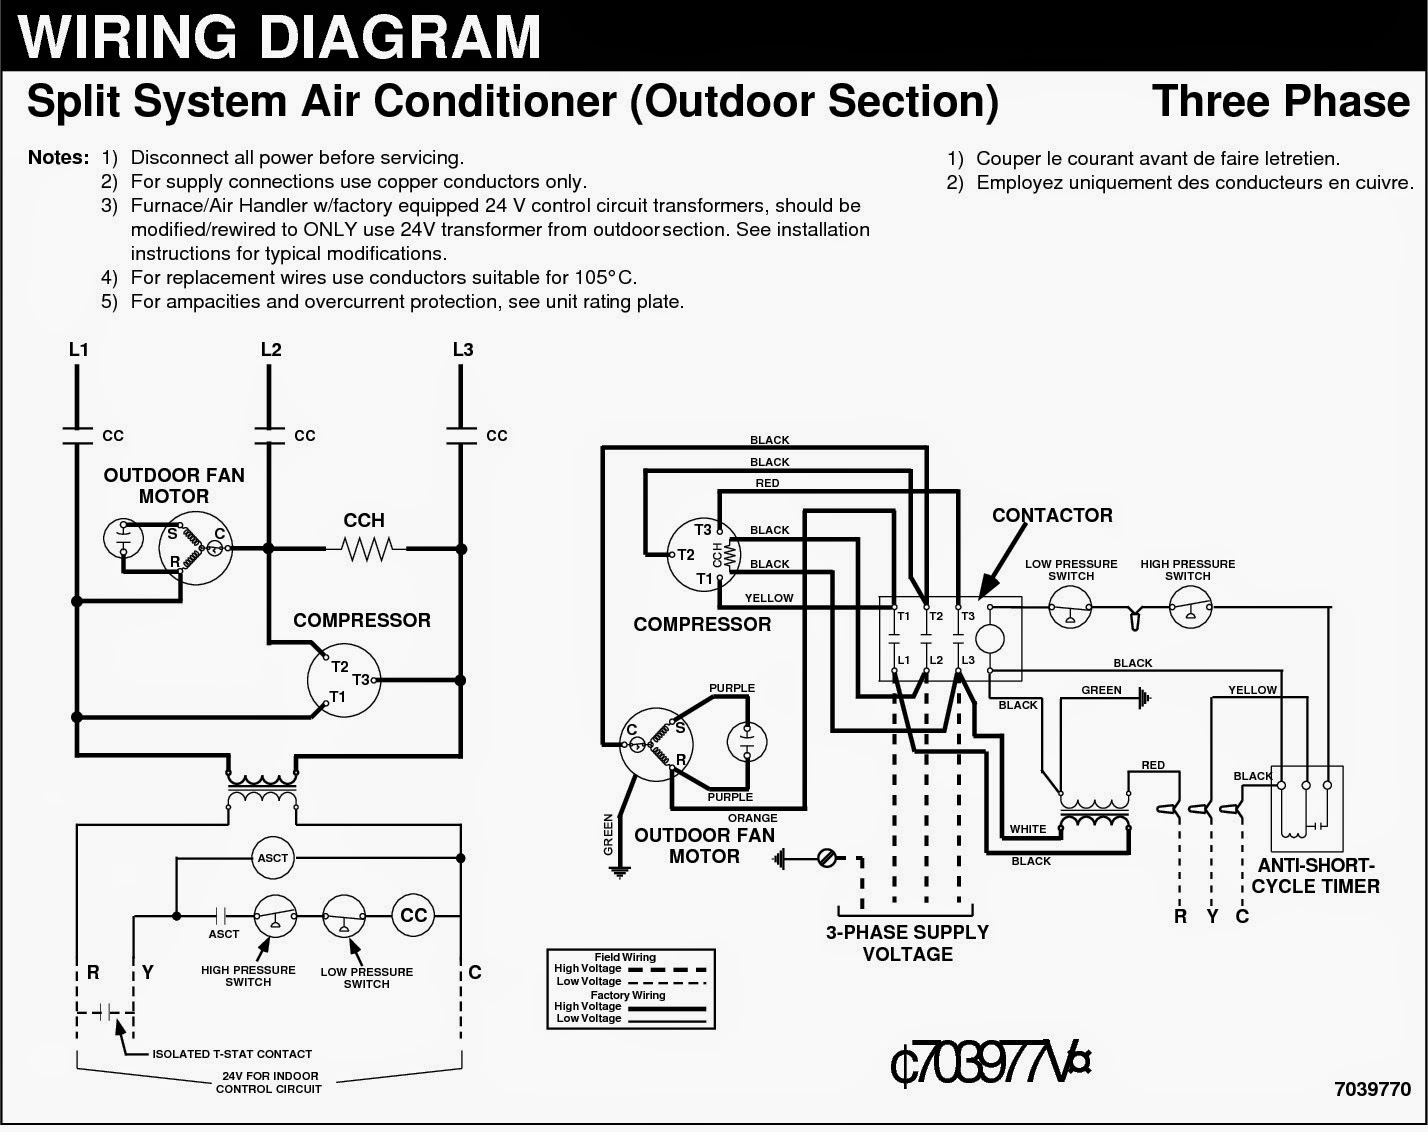 3+phase electrical wiring diagrams for air conditioning systems part two 3 phase tankless water heater wiring diagram at reclaimingppi.co